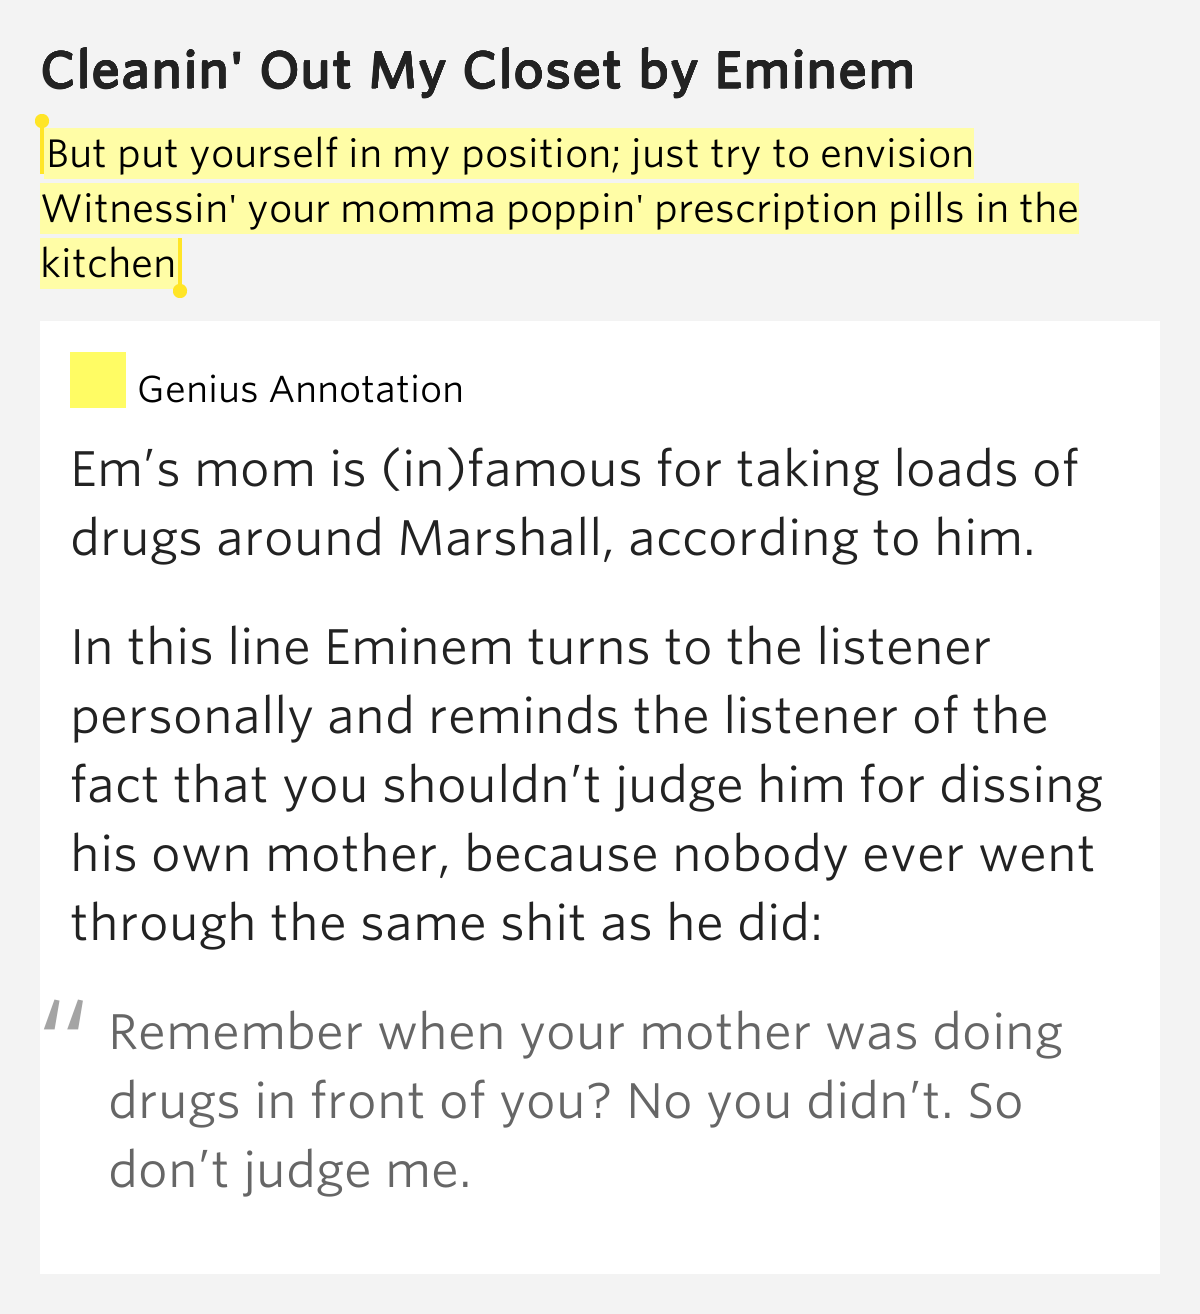 Clean out my closet lyrics